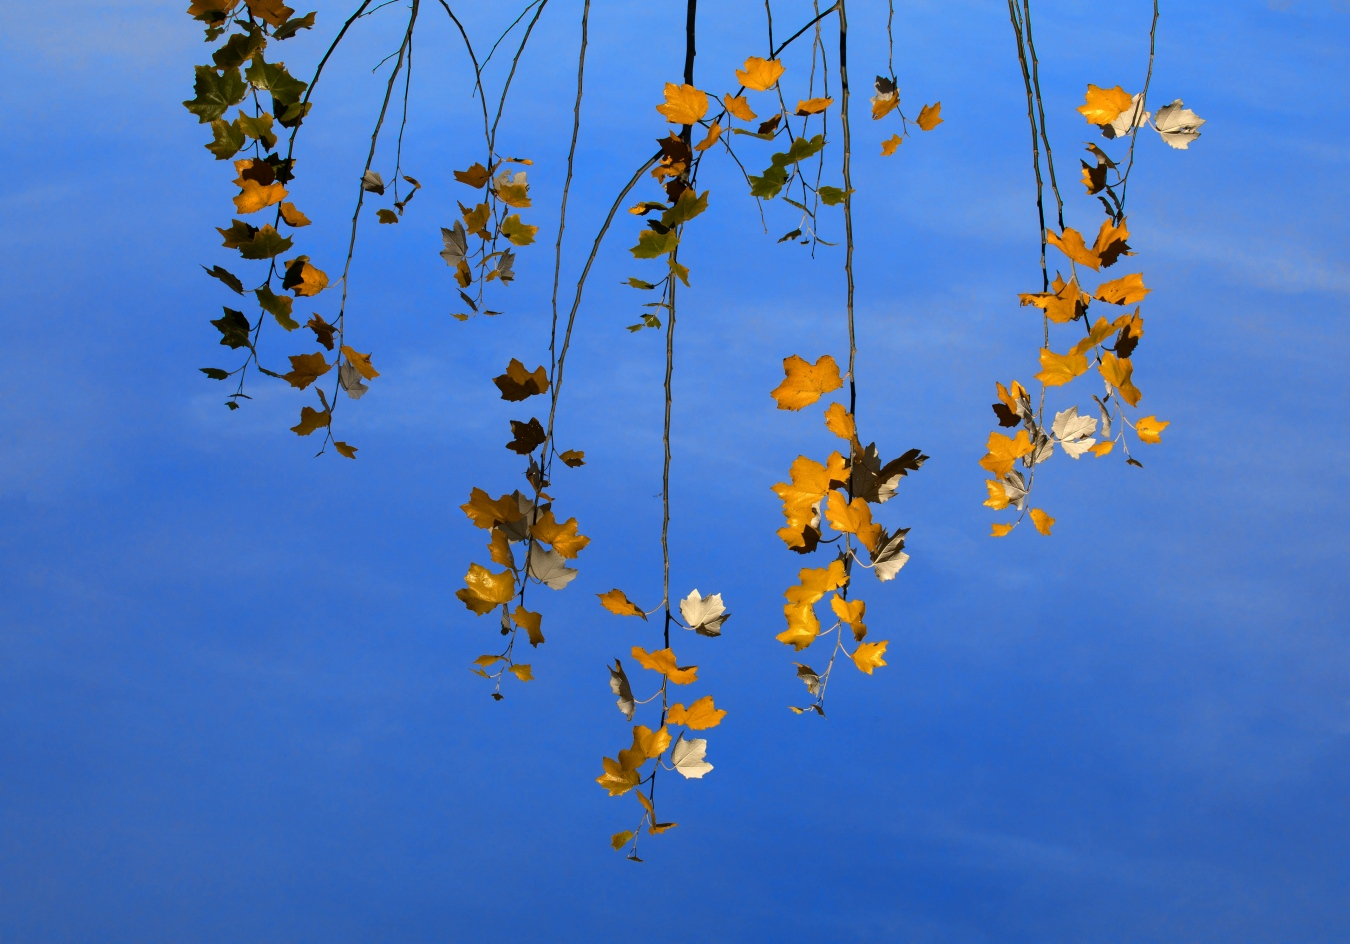 Leaves in the Sky - Nature I - Luis Checa, Fotografía Creativa